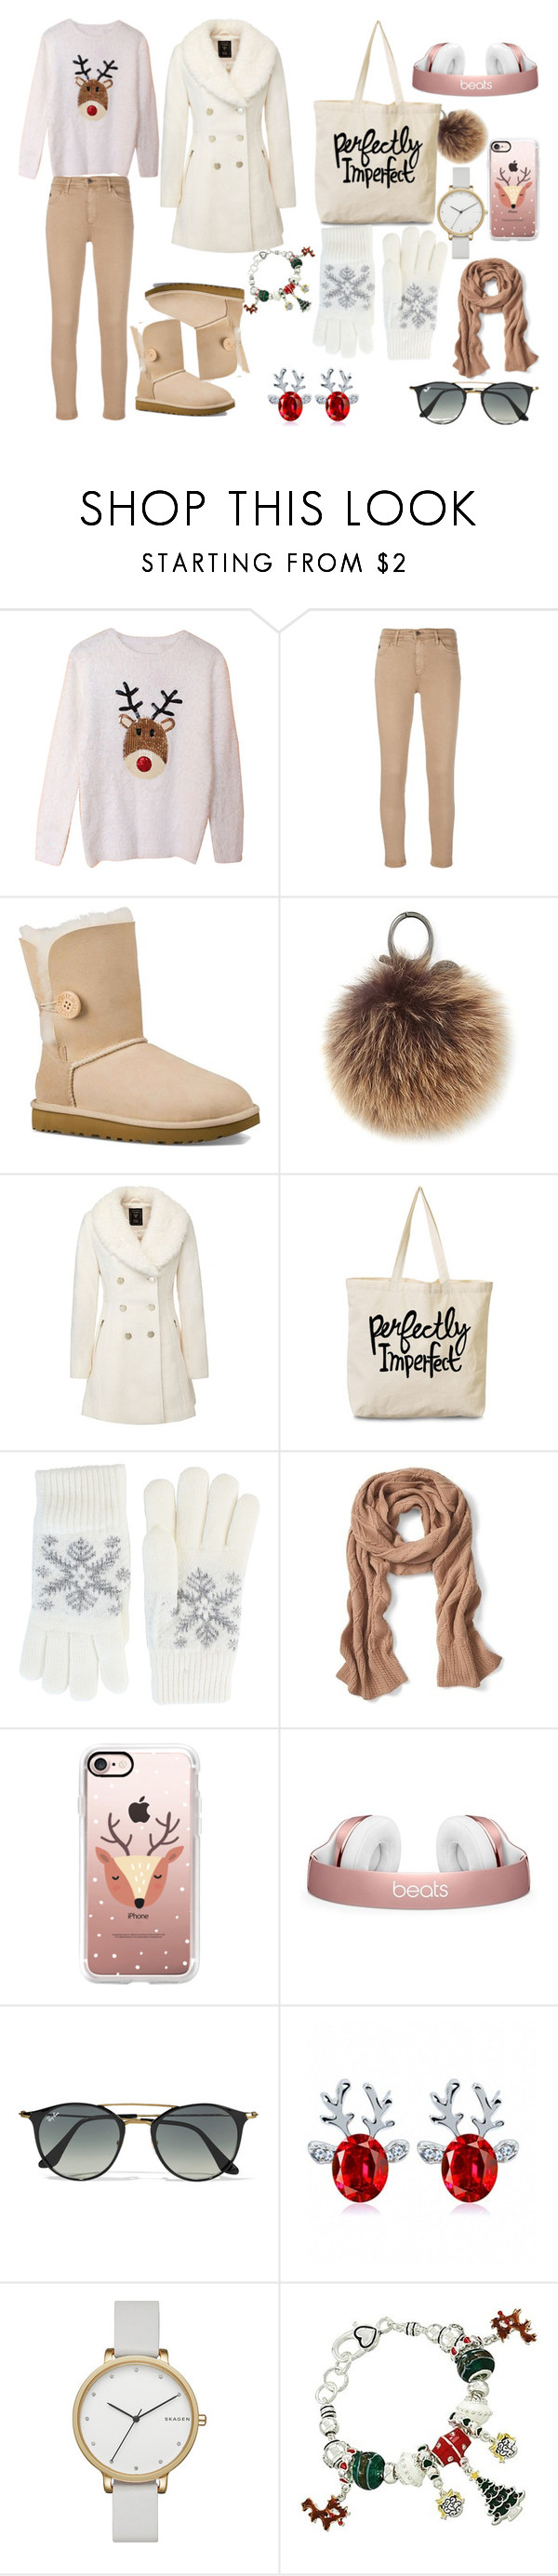 Wintery Set #2 by sandstormthenerd on Polyvore featuring AG Adriano Goldschmied, UGG Australia, Rebecca Minkoff, Skagen, Fits, Banana Republic, Casetify, Ray-Ban and Christmas